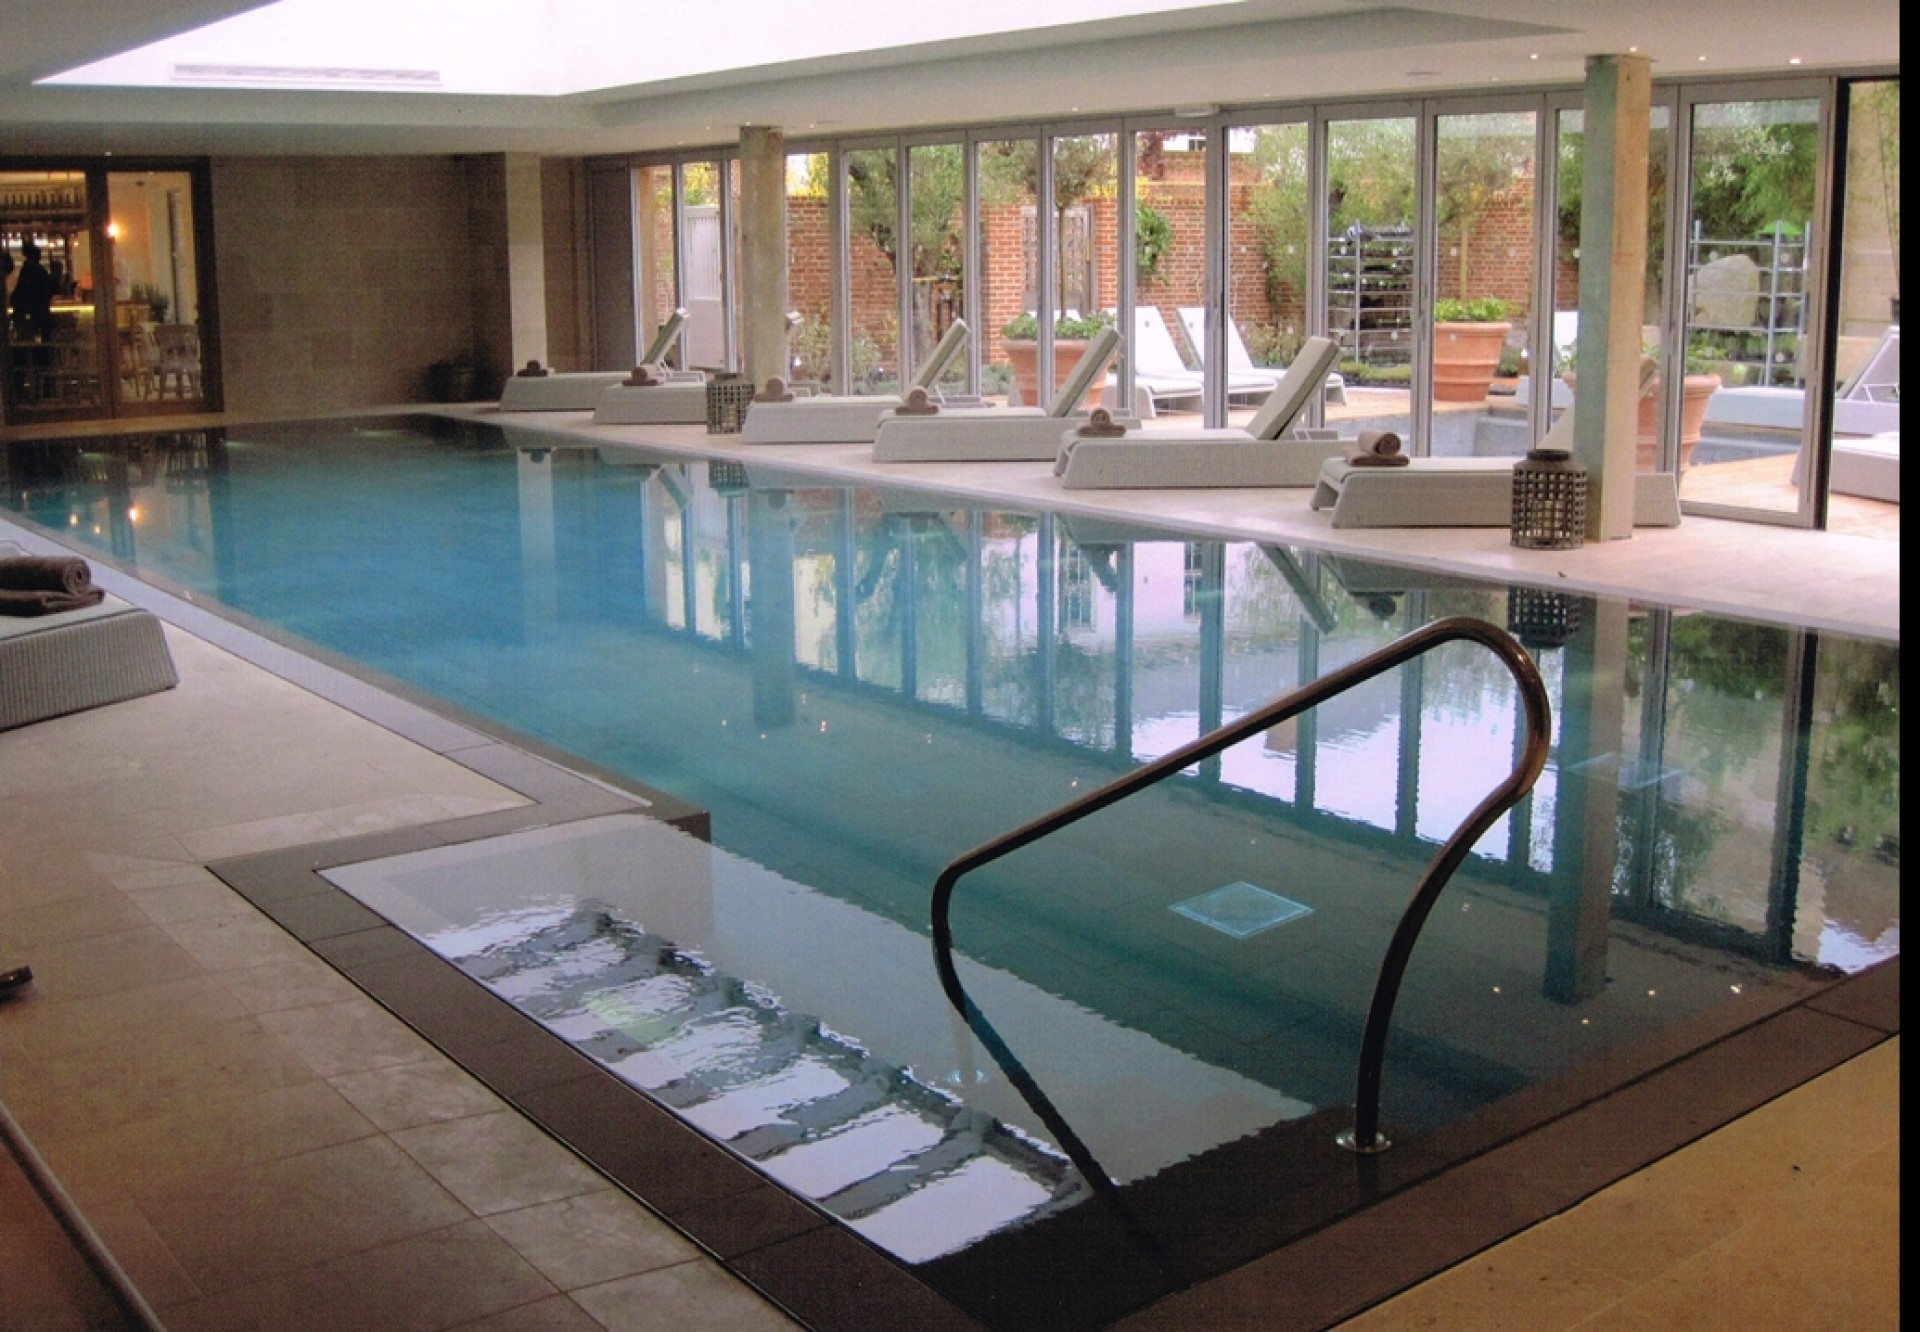 Cheap Indoor Pool Ideas fully enclosed pool with attached spa Indoor Swimming Pool